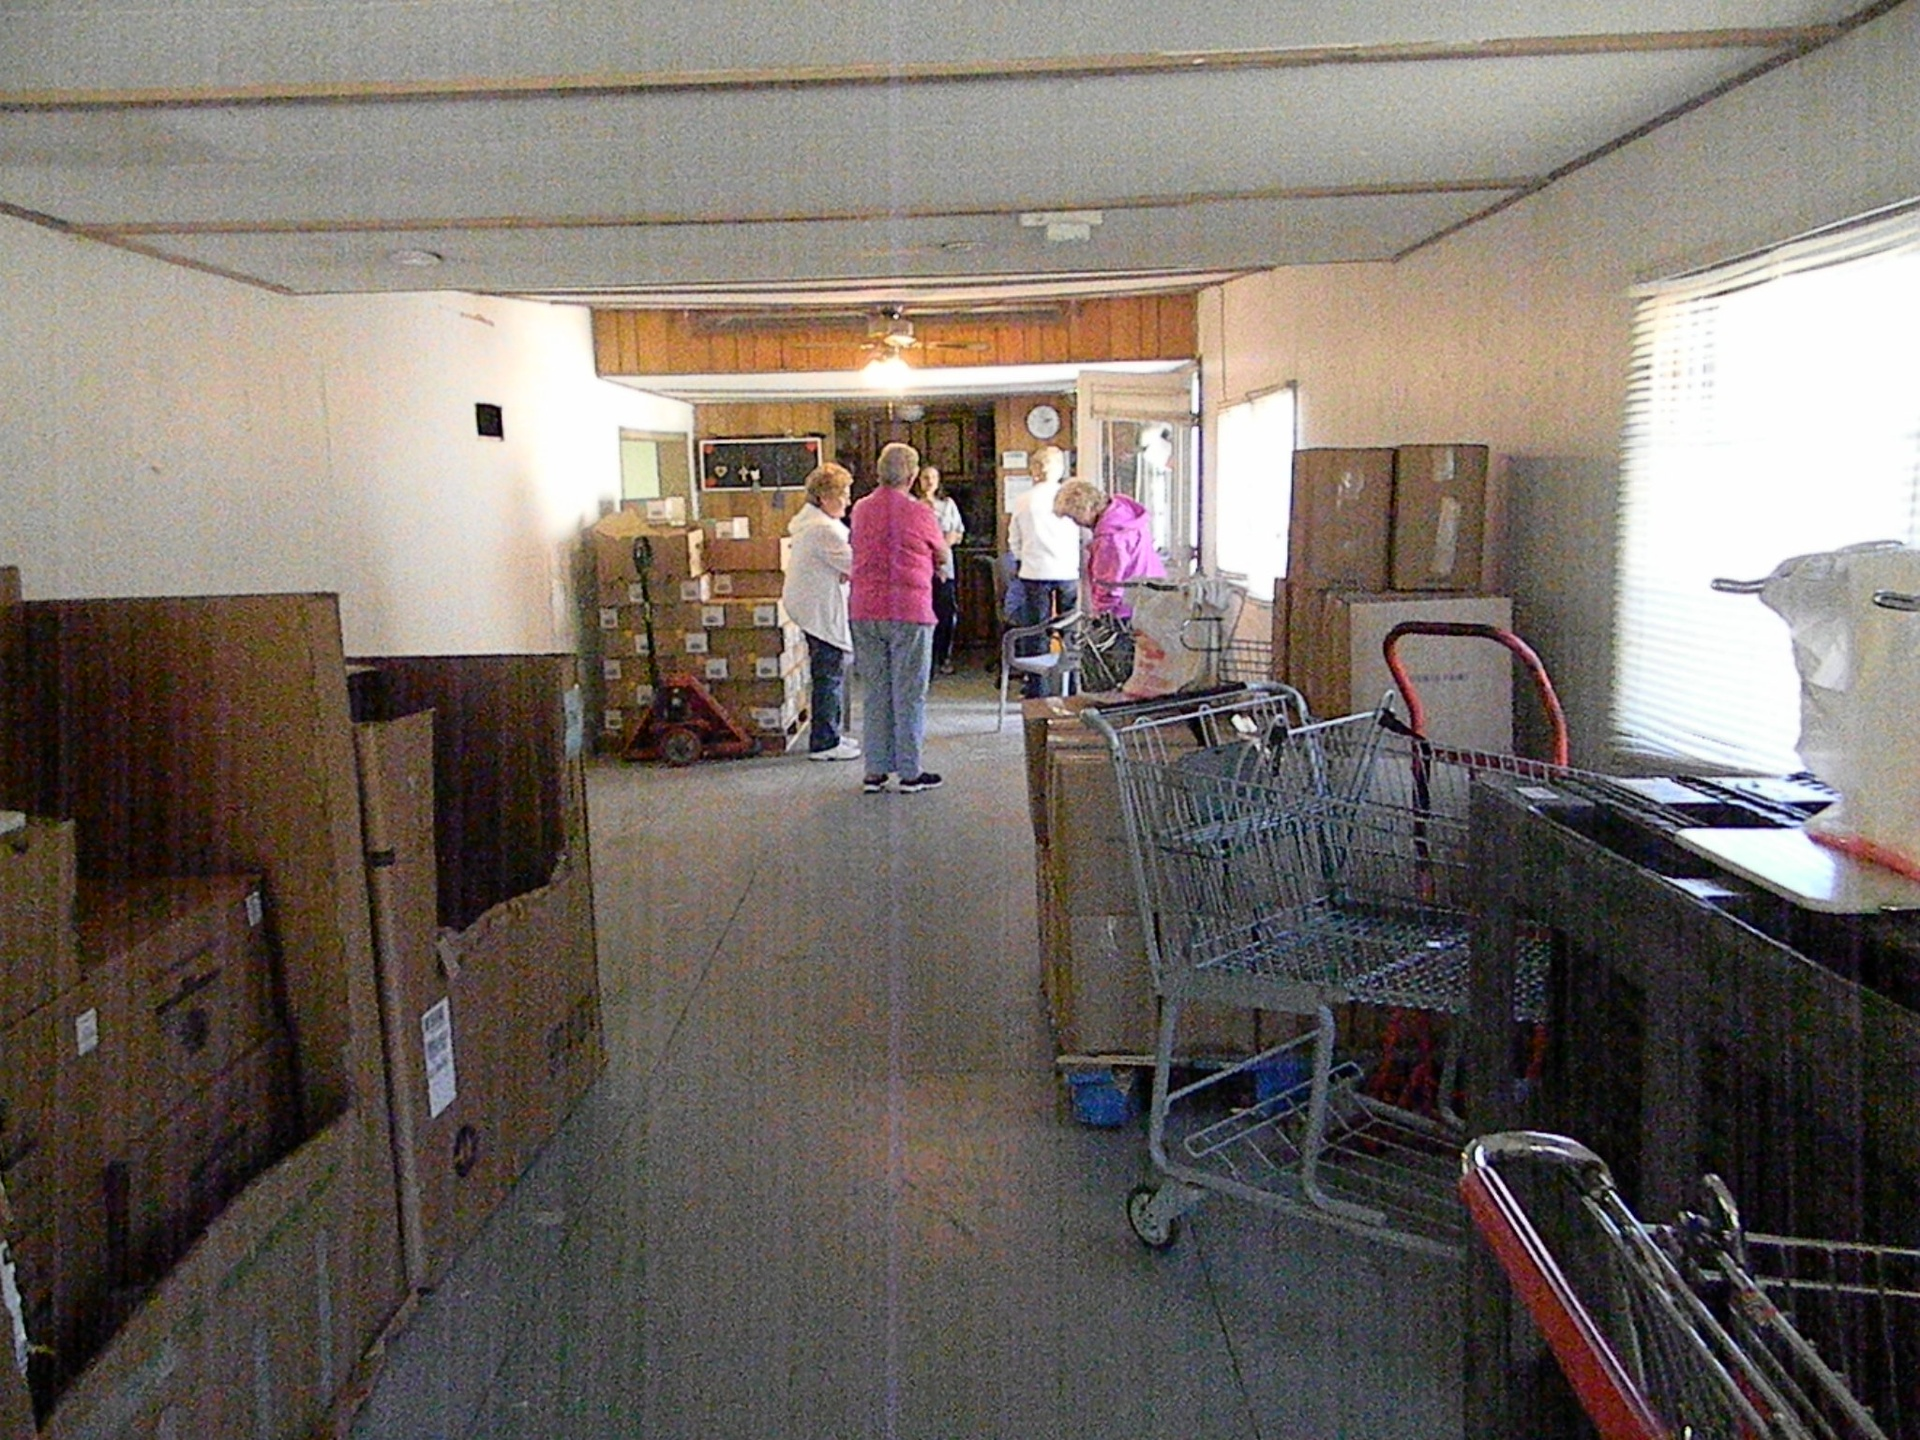 Inside of Old Food Pantry